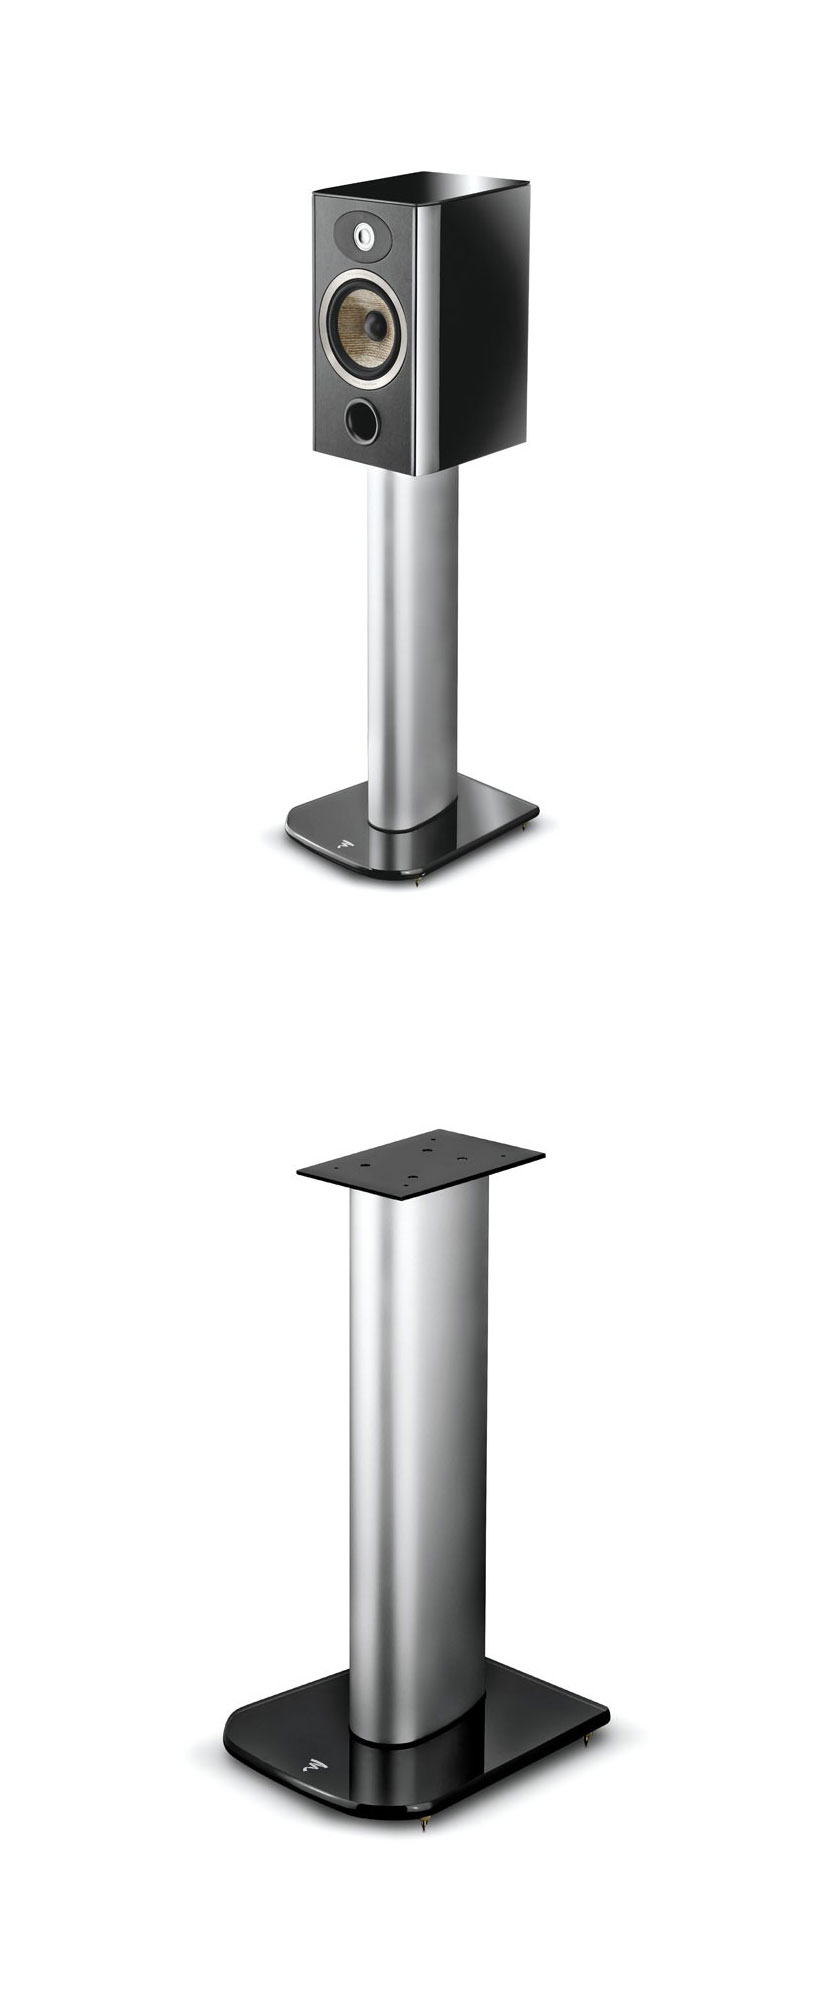 Aria S 900 stand